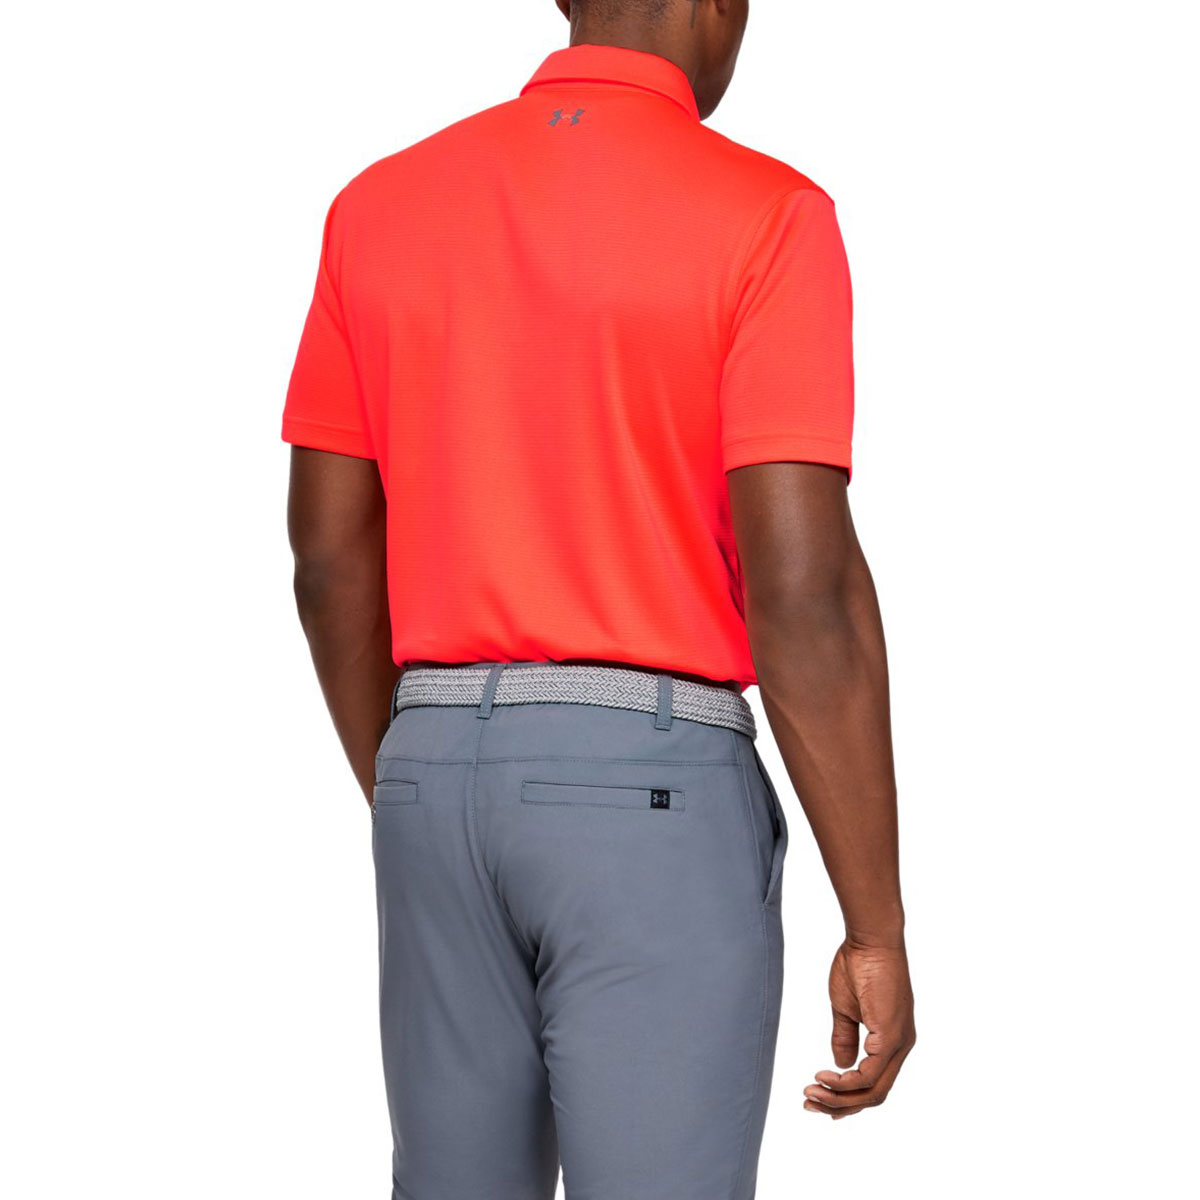 Under-Armour-Mens-2019-Golf-Tech-Wicking-Textured-Soft-Light-Polo-Shirt thumbnail 15